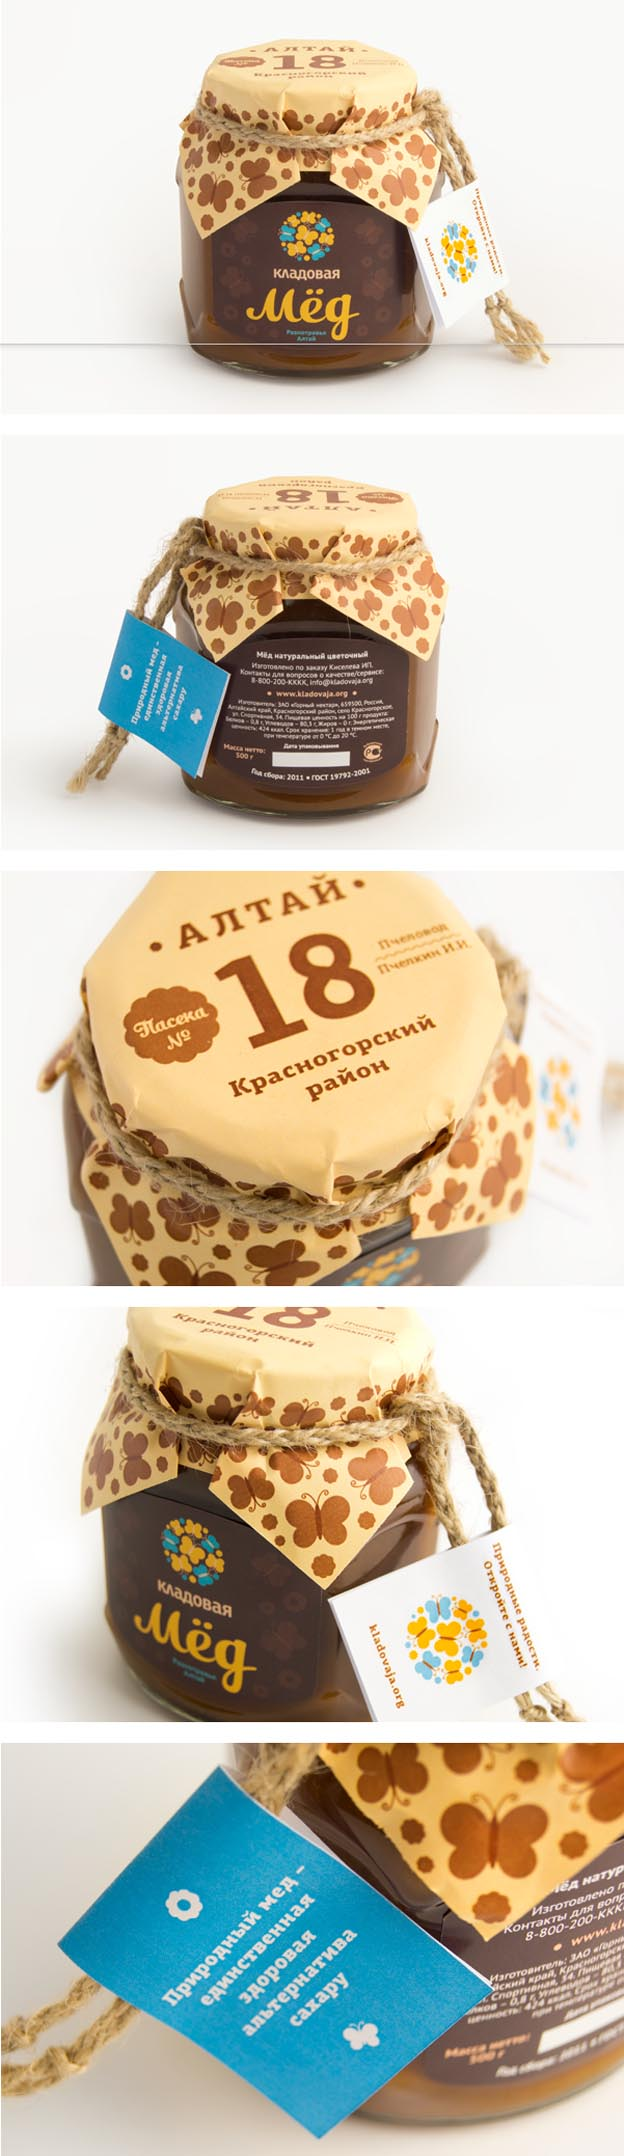 You are looking a fantastic honey packaging design. The designer made this honey bottle design catchy and attractive to increase the sales. This dazzling packaging is designed by Valeriy Sadovskiy, a senior graphic designer from Novosibirsk, Russia. This work has been done in Hattomonkey design studio.